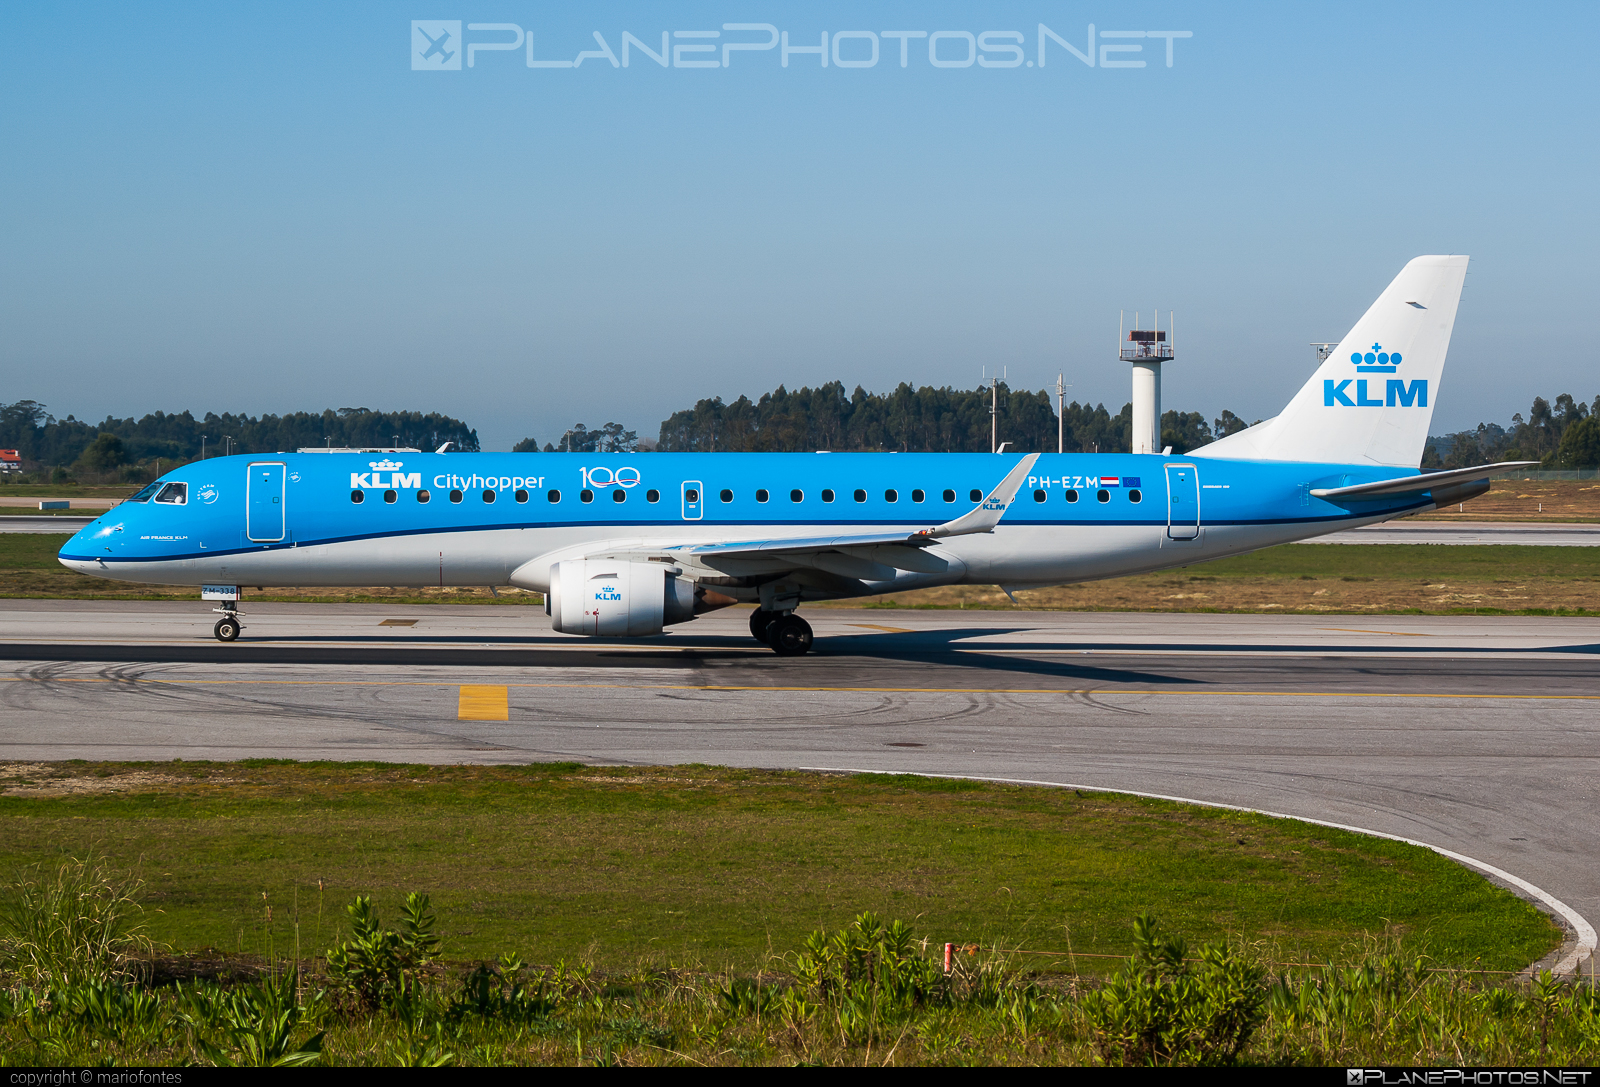 Embraer E190STD (ERJ-190-100STD) - PH-EZM operated by KLM Cityhopper #e190 #e190100 #e190100std #e190std #embraer #embraer190 #embraer190100std #embraer190std #klm #klmcityhopper